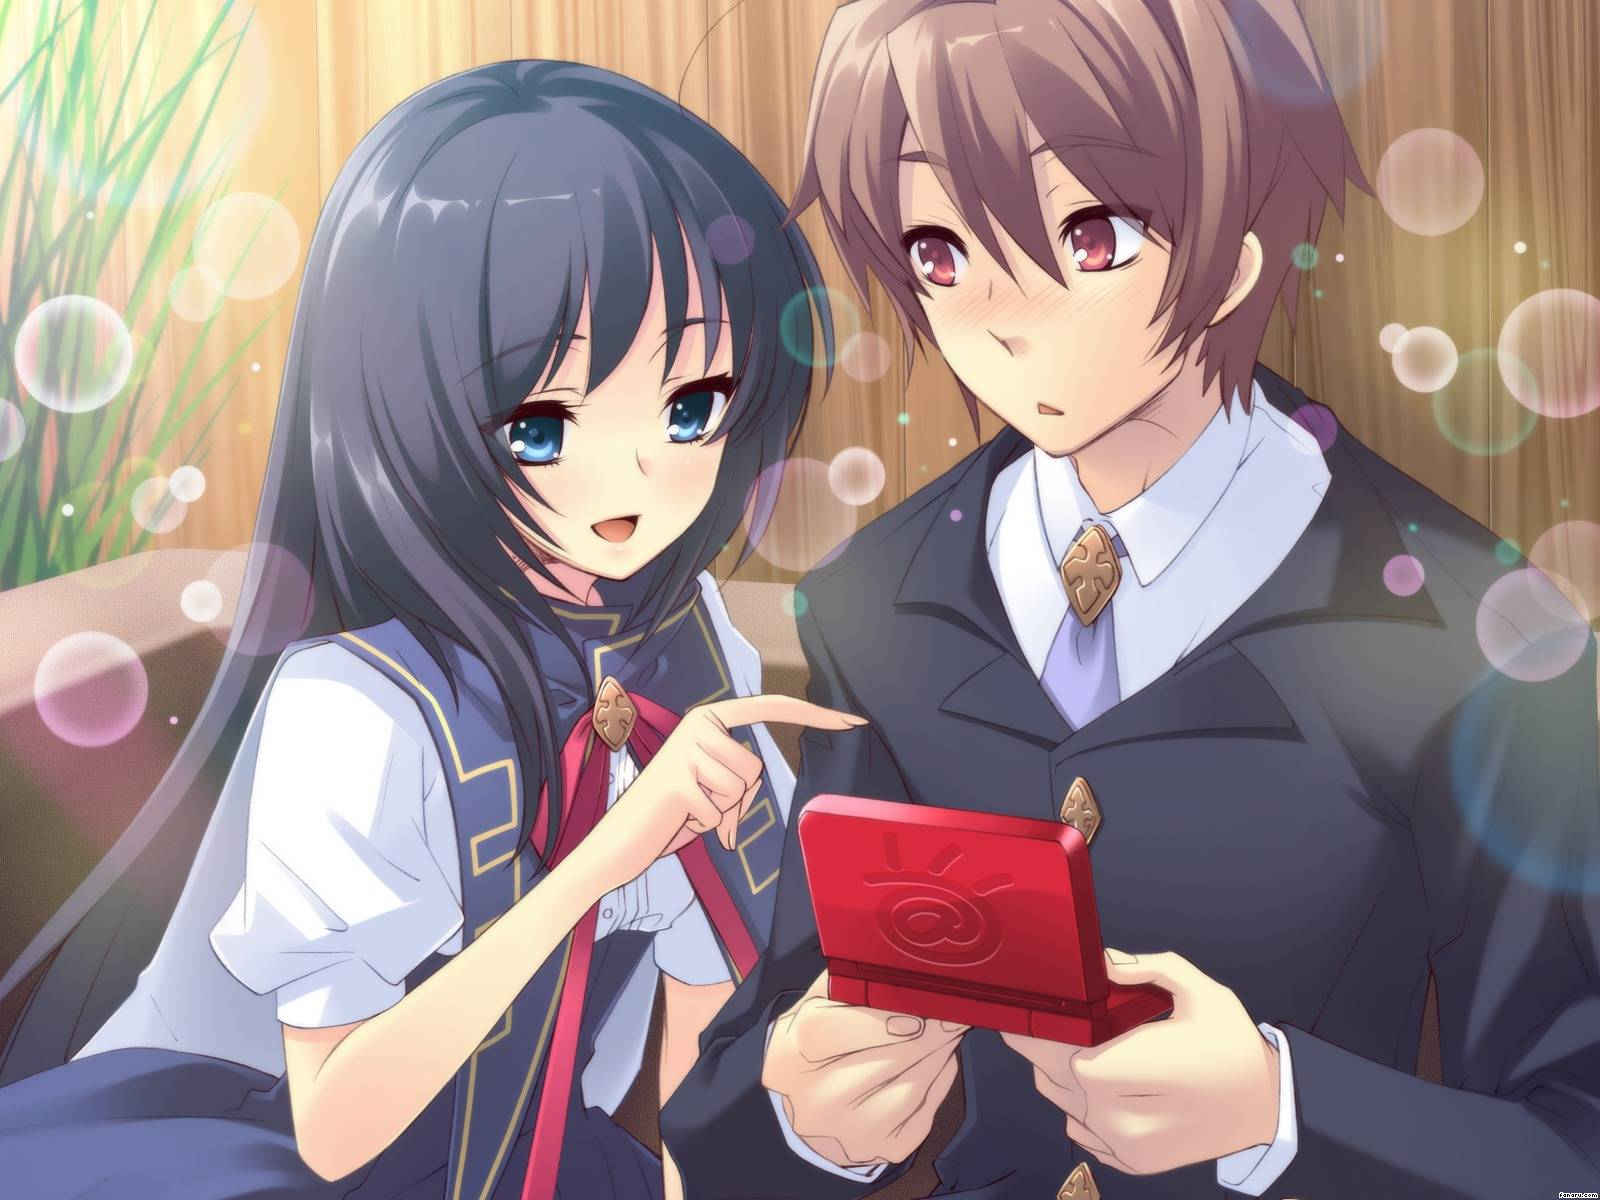 Cute HD Anime Couple DP Wallpapers - Wallpaper Cave